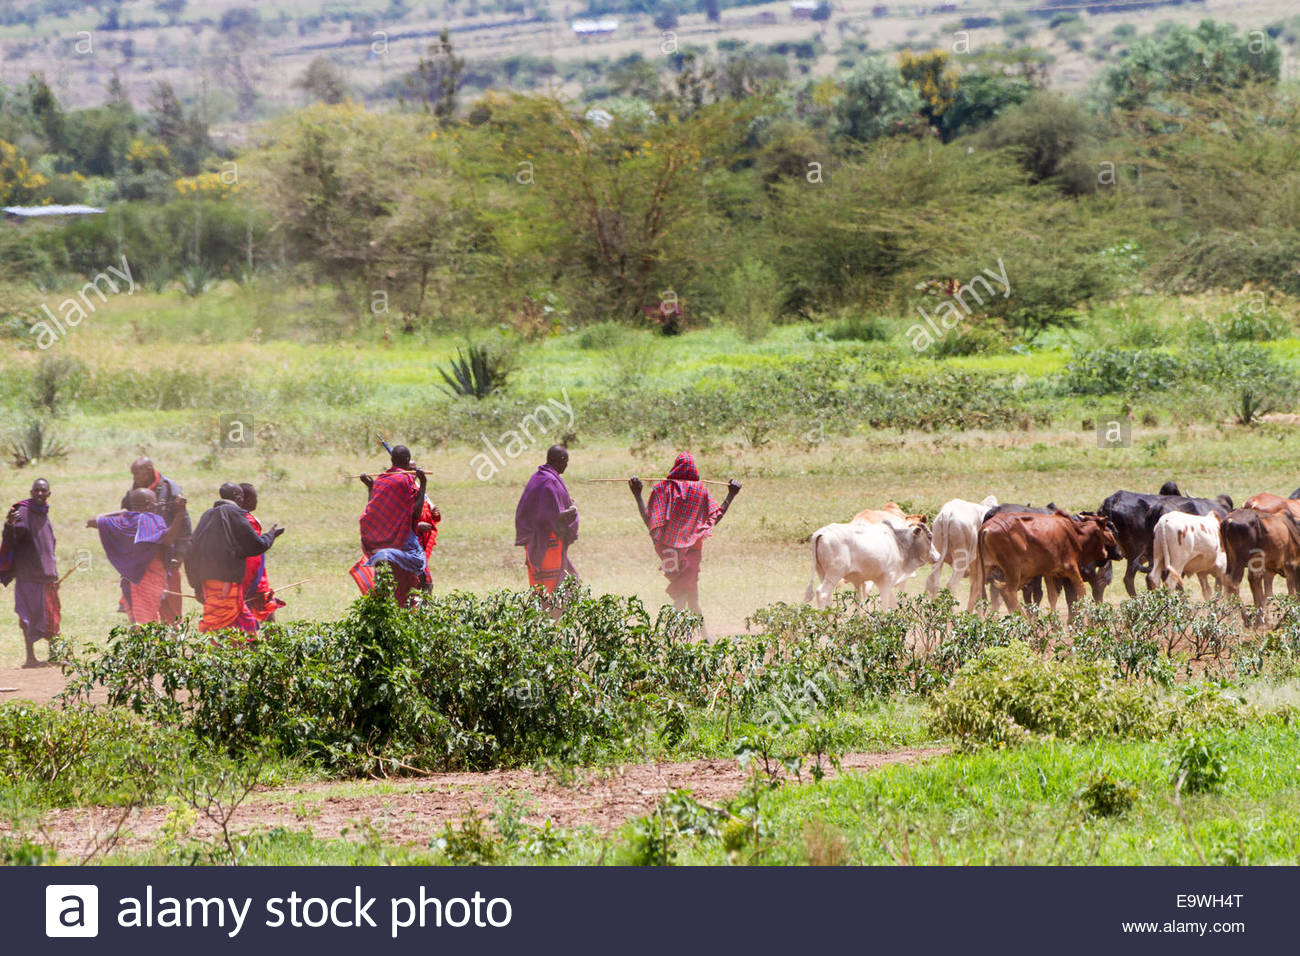 cattle people in east africa Loss of fertile land fuels 'looming crisis' across africa  kenya in the east  too many people, too many cattle and too little.